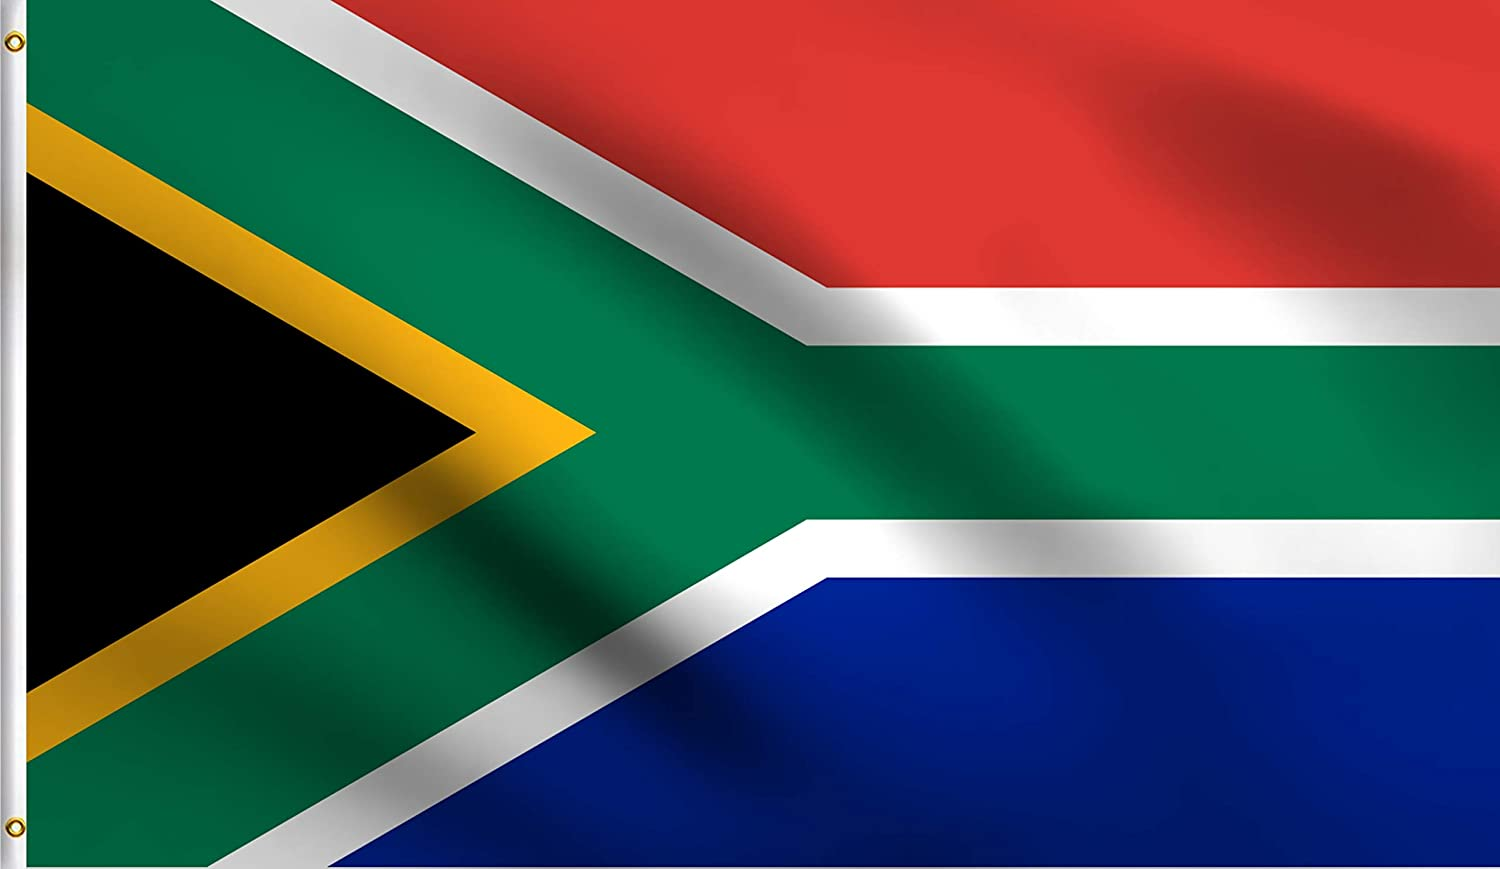 DMSE New NationalRepublic of South Africa African Flag 2X3 Ft Foot 100% Polyester 100D Flag UV Resistant (2' X 3' Ft Foot)